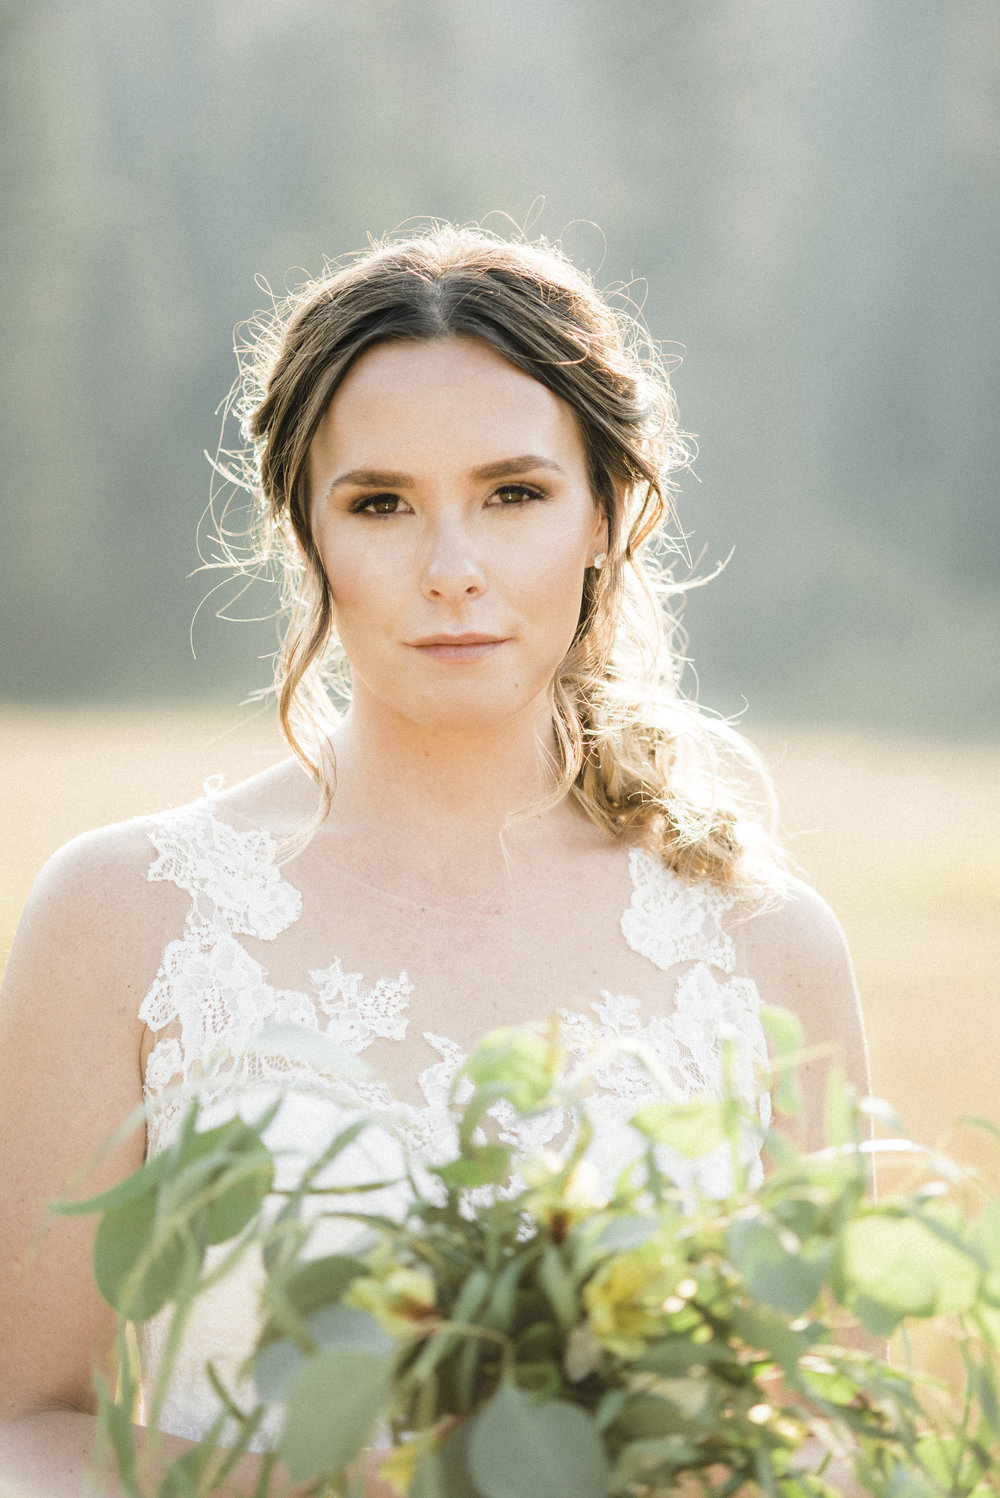 Brittnee (Ethereal Hair & Makeup/Bozeman, MT) killed it with this simple, timeless romantic, slightly boho-look. Autumn  almost  looks like she's not wearing any makeup at all - she just looks like she is naturally perfectly sculpted and her skin simply glows. Side note: Brittnee also did her hair. She's incredible.